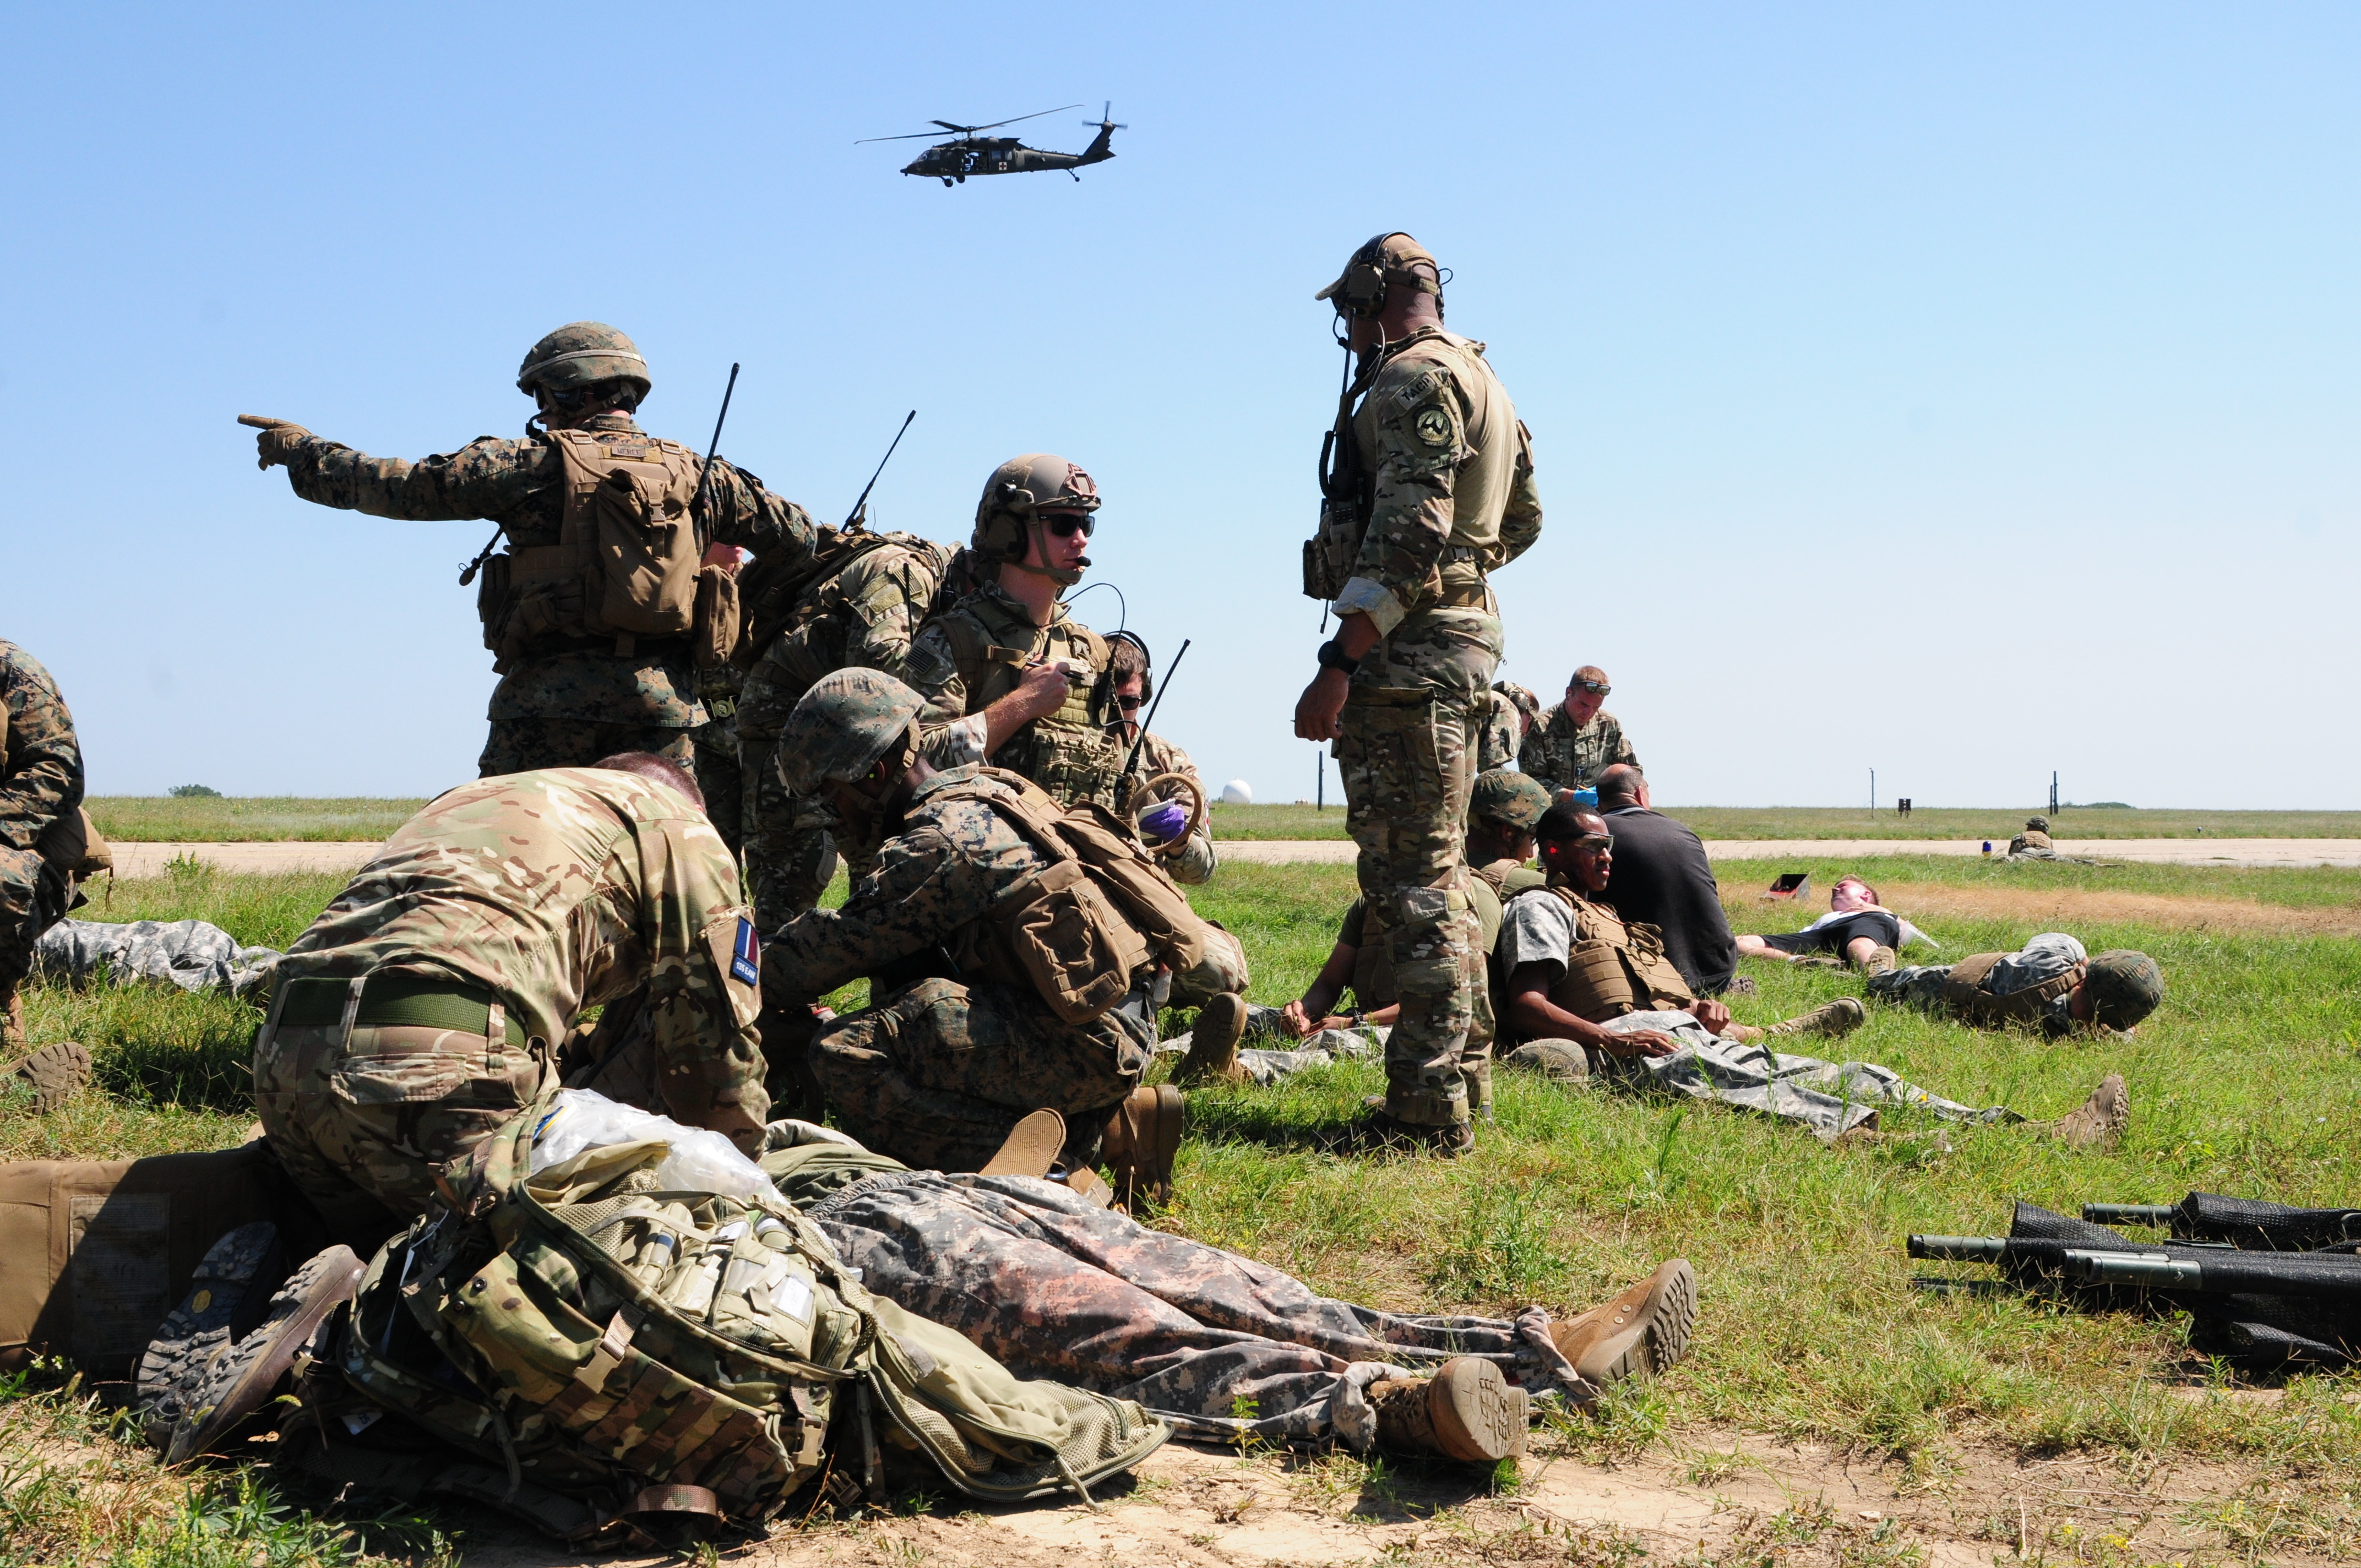 The U.S. Air Force, U.S. Marine Corps and British soldiers conduct Exercise Black Lion and Caduceus in support of Atlantic Resolve, an enduring training exercise between NATO and U.S. Forces at Mihail Kogalniceanu Air Base in Romania, August 16, 2018. U.S. and NATO forces worked together as a cohesive unit to execute a downed aircraft search and rescue mission.